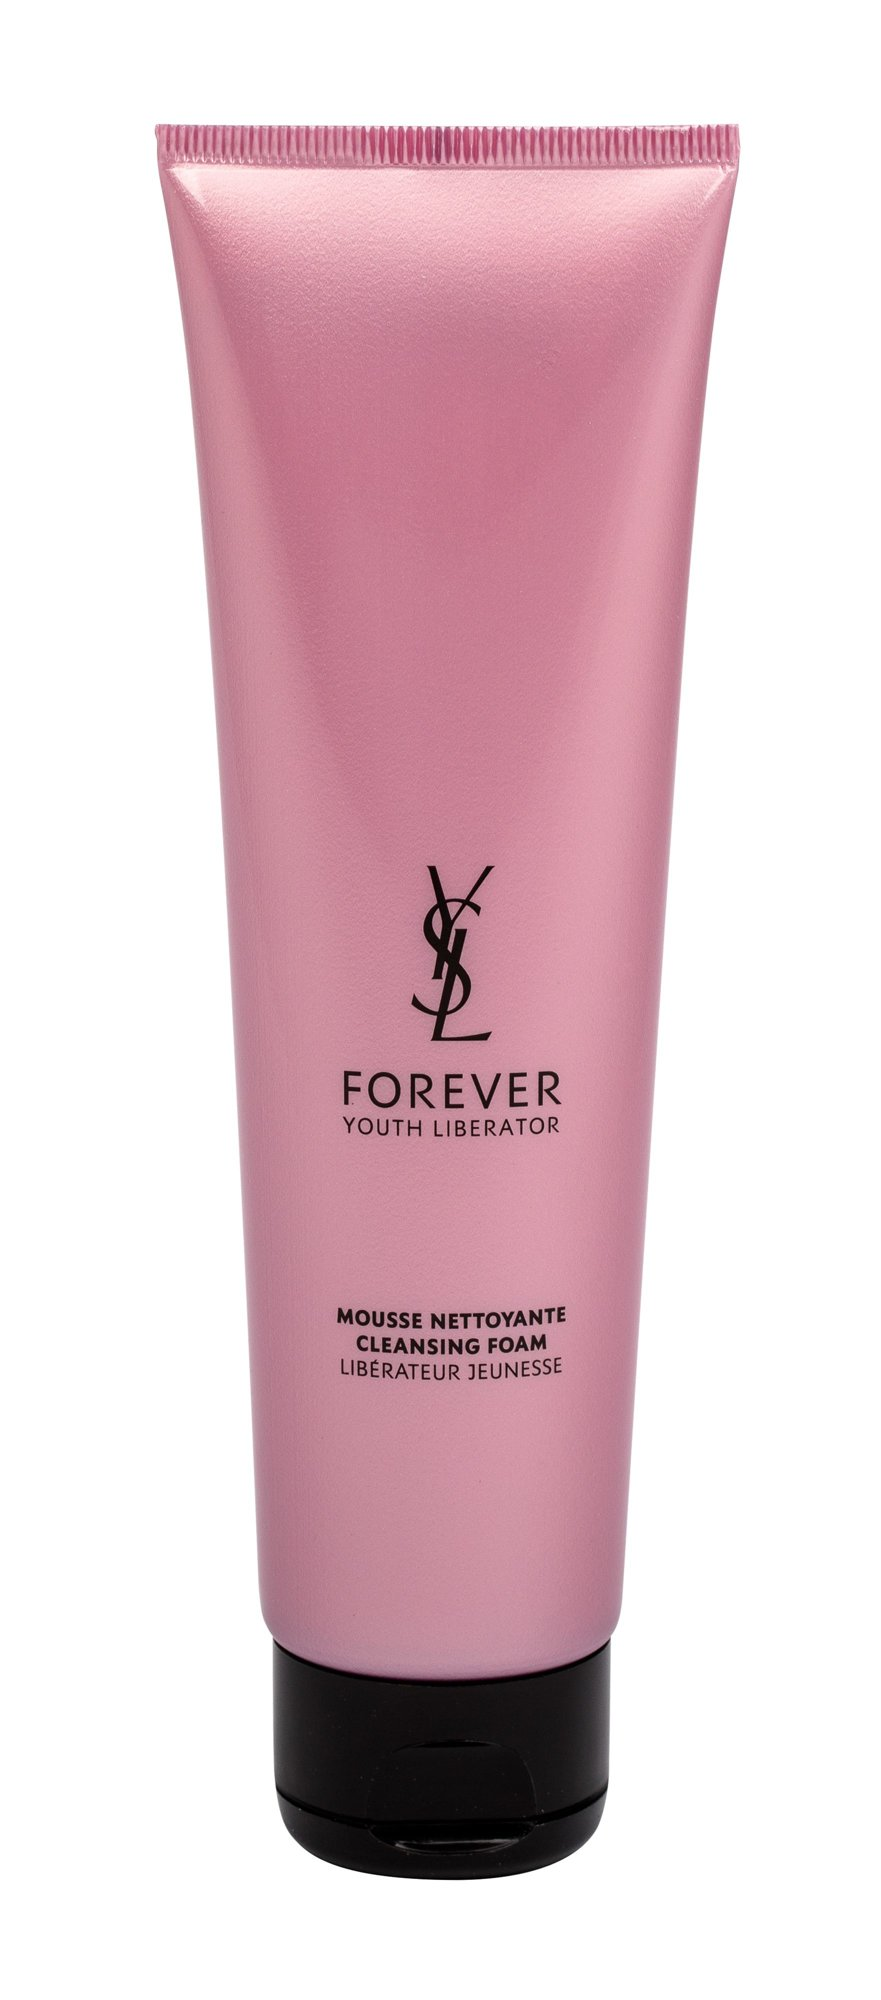 Yves Saint Laurent Forever Youth Liberator Cleansing Mousse 150ml